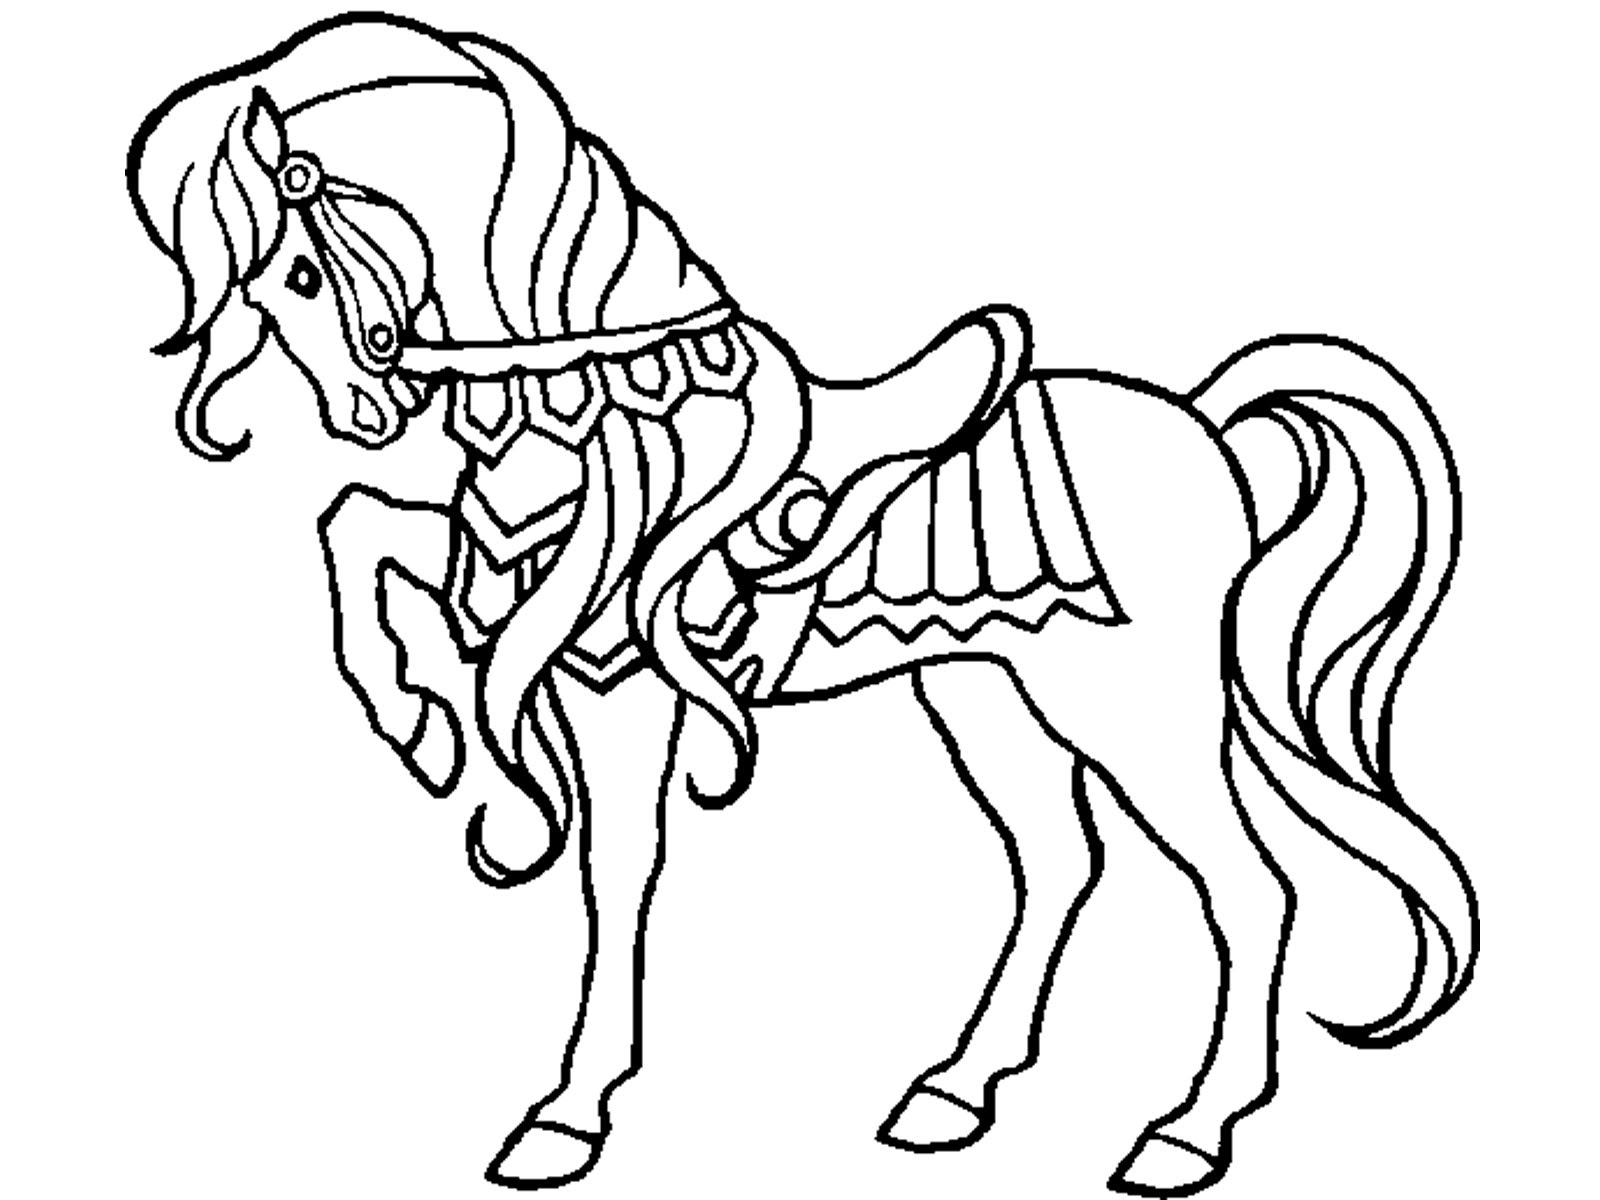 free-animals-horse-printable-coloring-pages-for ...